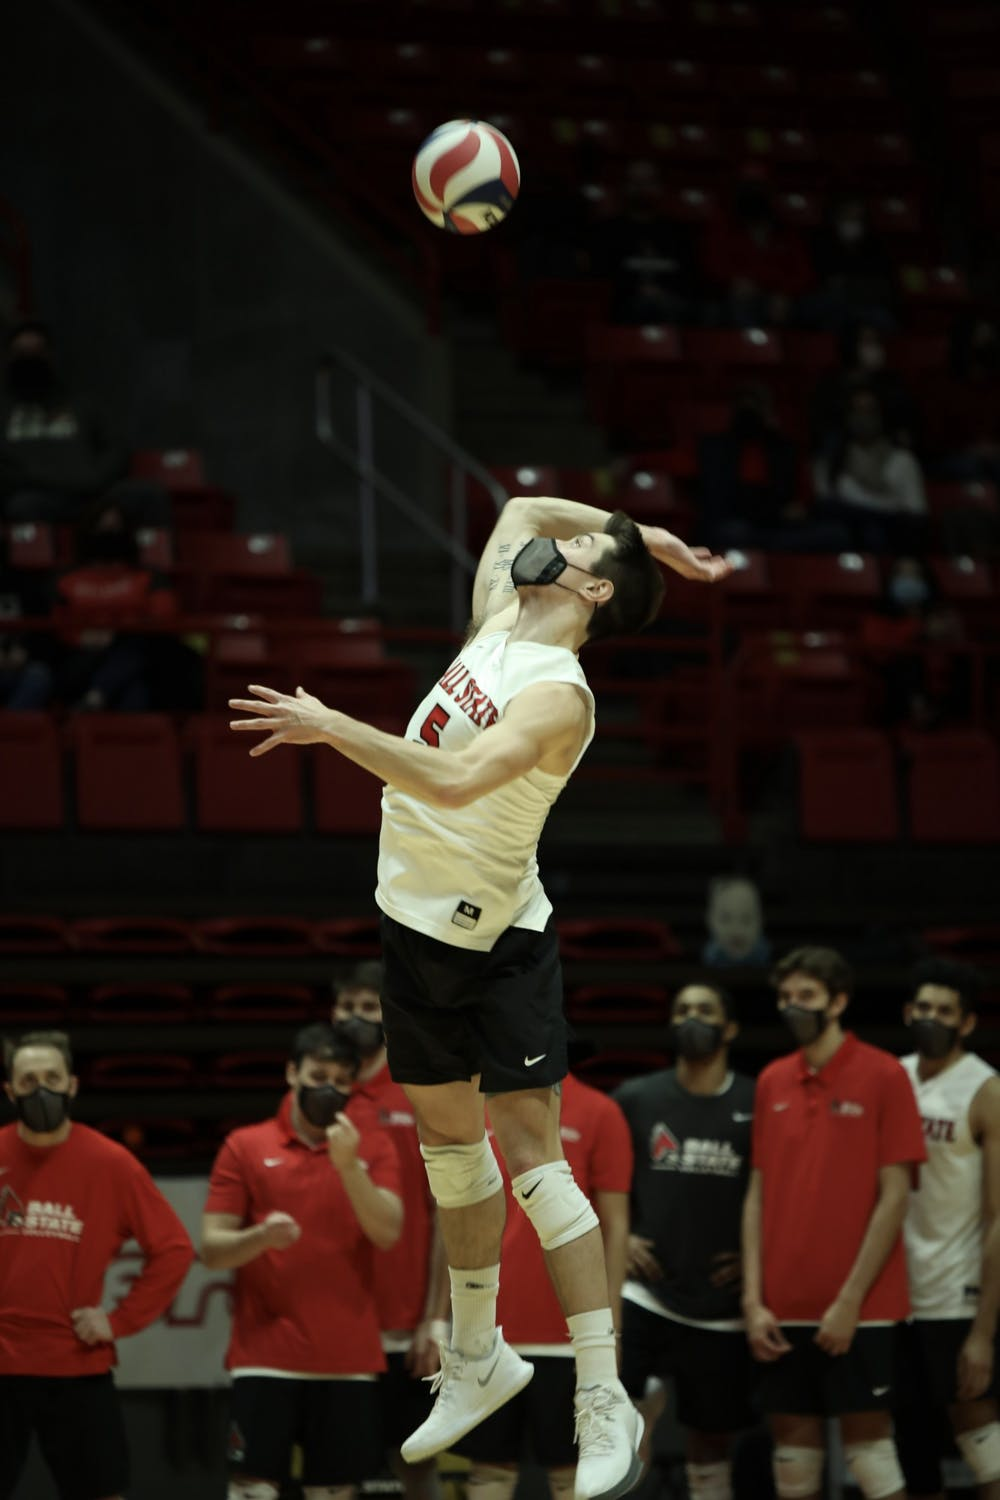 <p>Senior setter Quinn Isaacson serves the ball Feb 27, 2021, in John E. Worthen Arena. The Cardinals lost 3-2 to the Buckeyes. <strong>Rylan Capper, DN</strong></p>